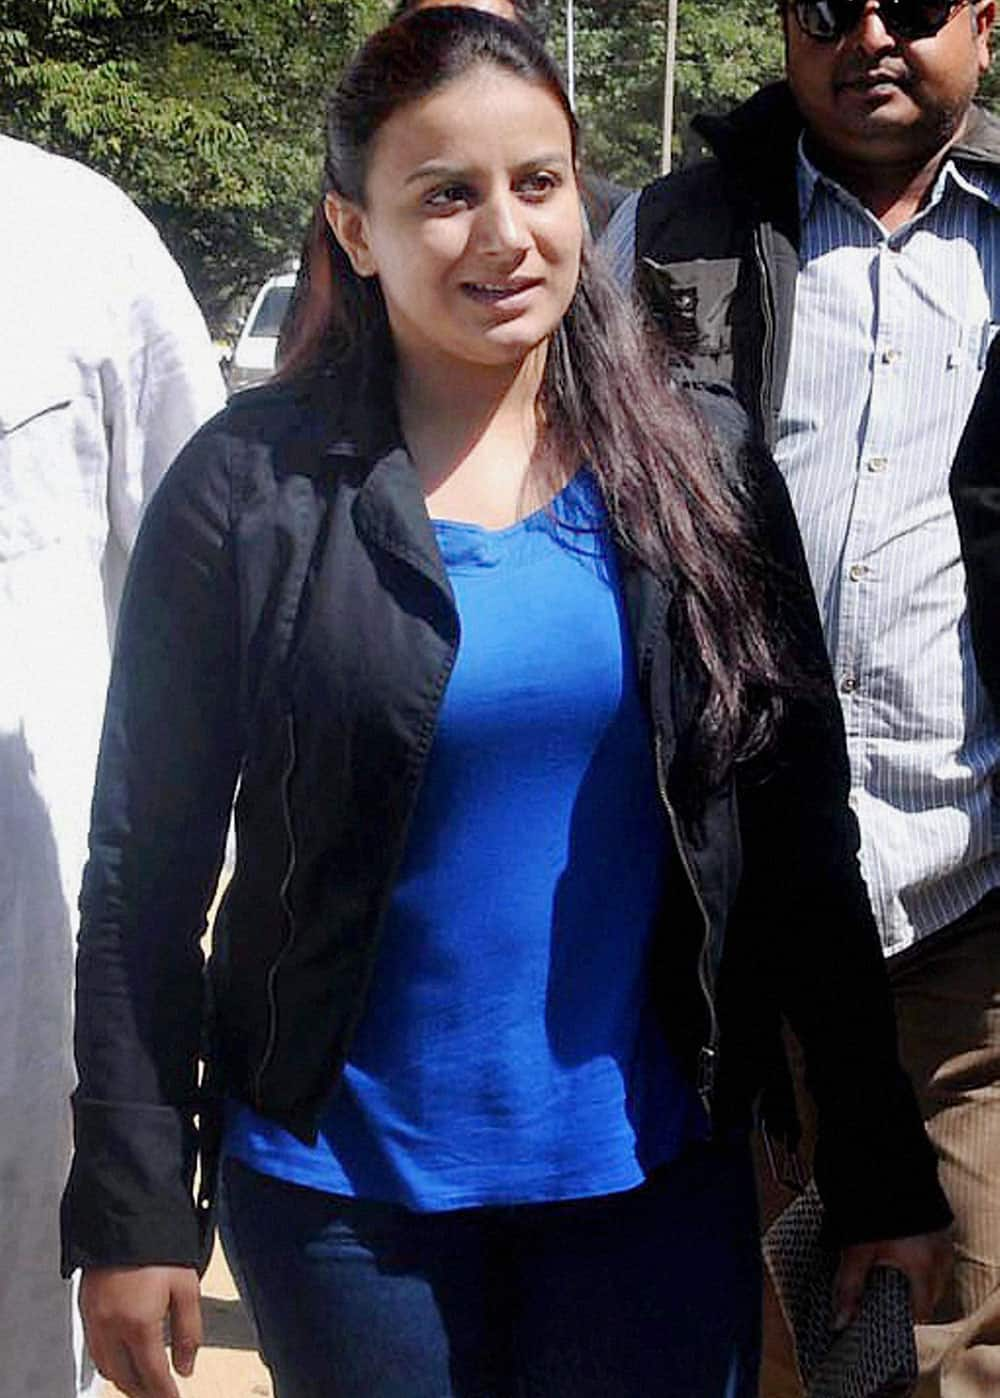 Kannada actress Pooja Gandhi arrives to appear before the court in Chikmagalur in Karnataka on Monday in connection with a case of violation of model code of conduct.